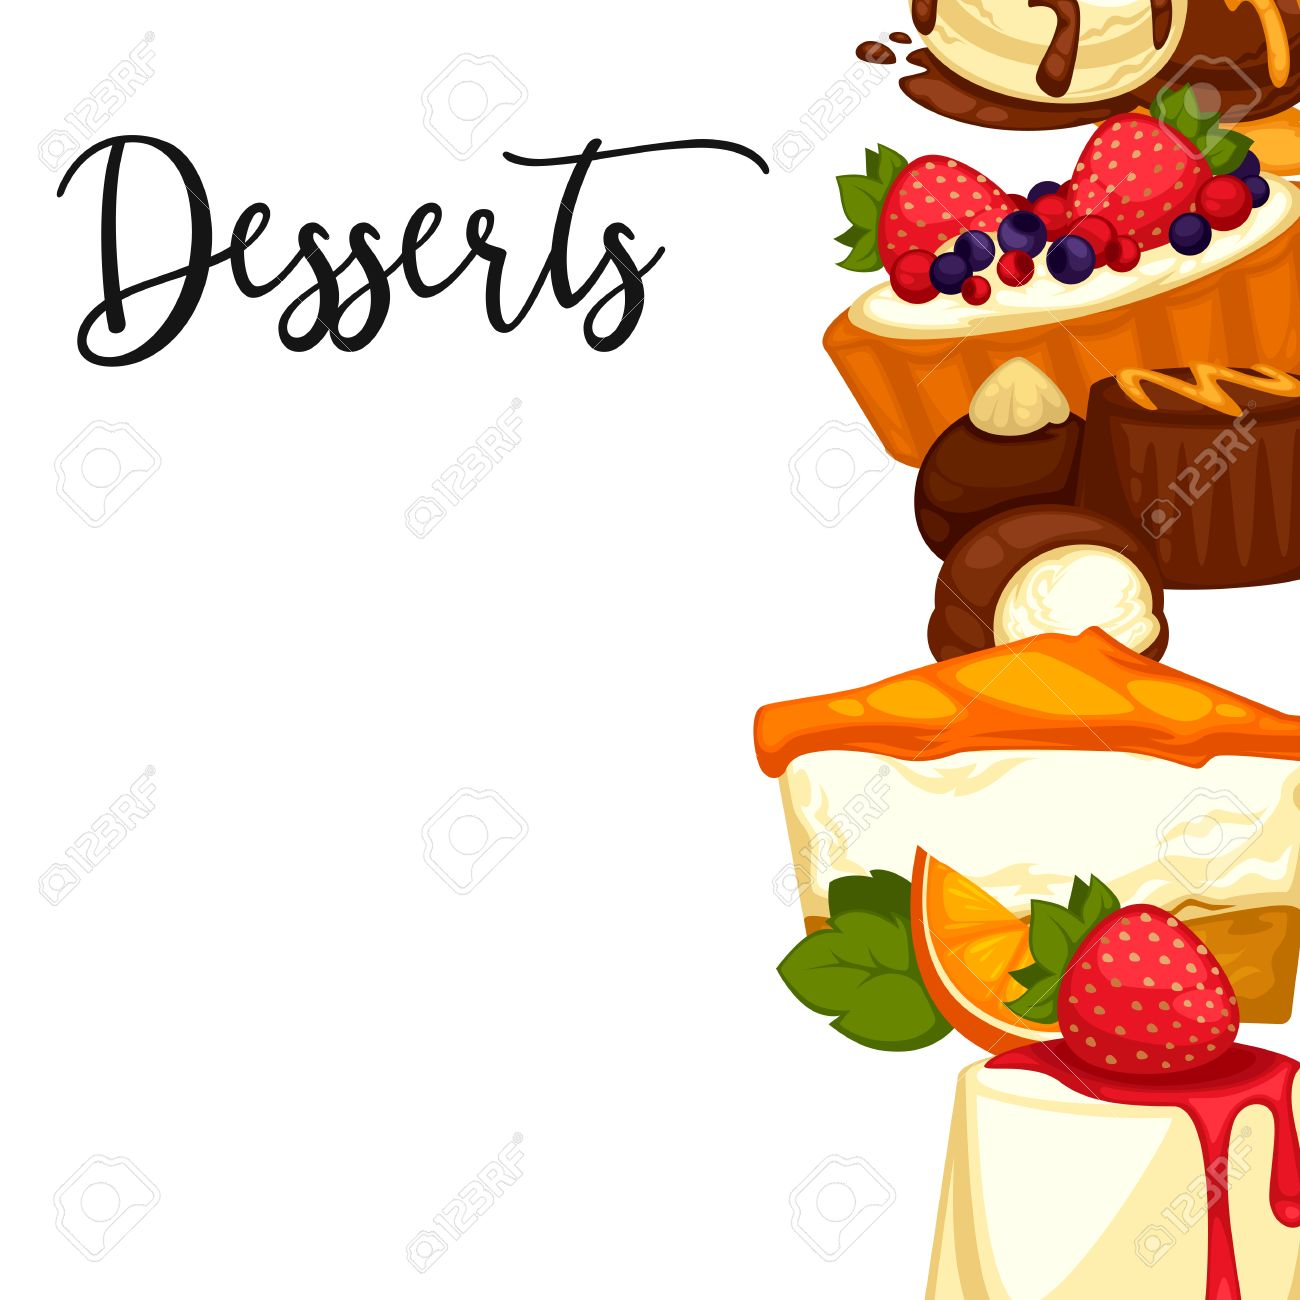 Delicious Sweet Dessert. Menu Template For Cafe Or Restaurant